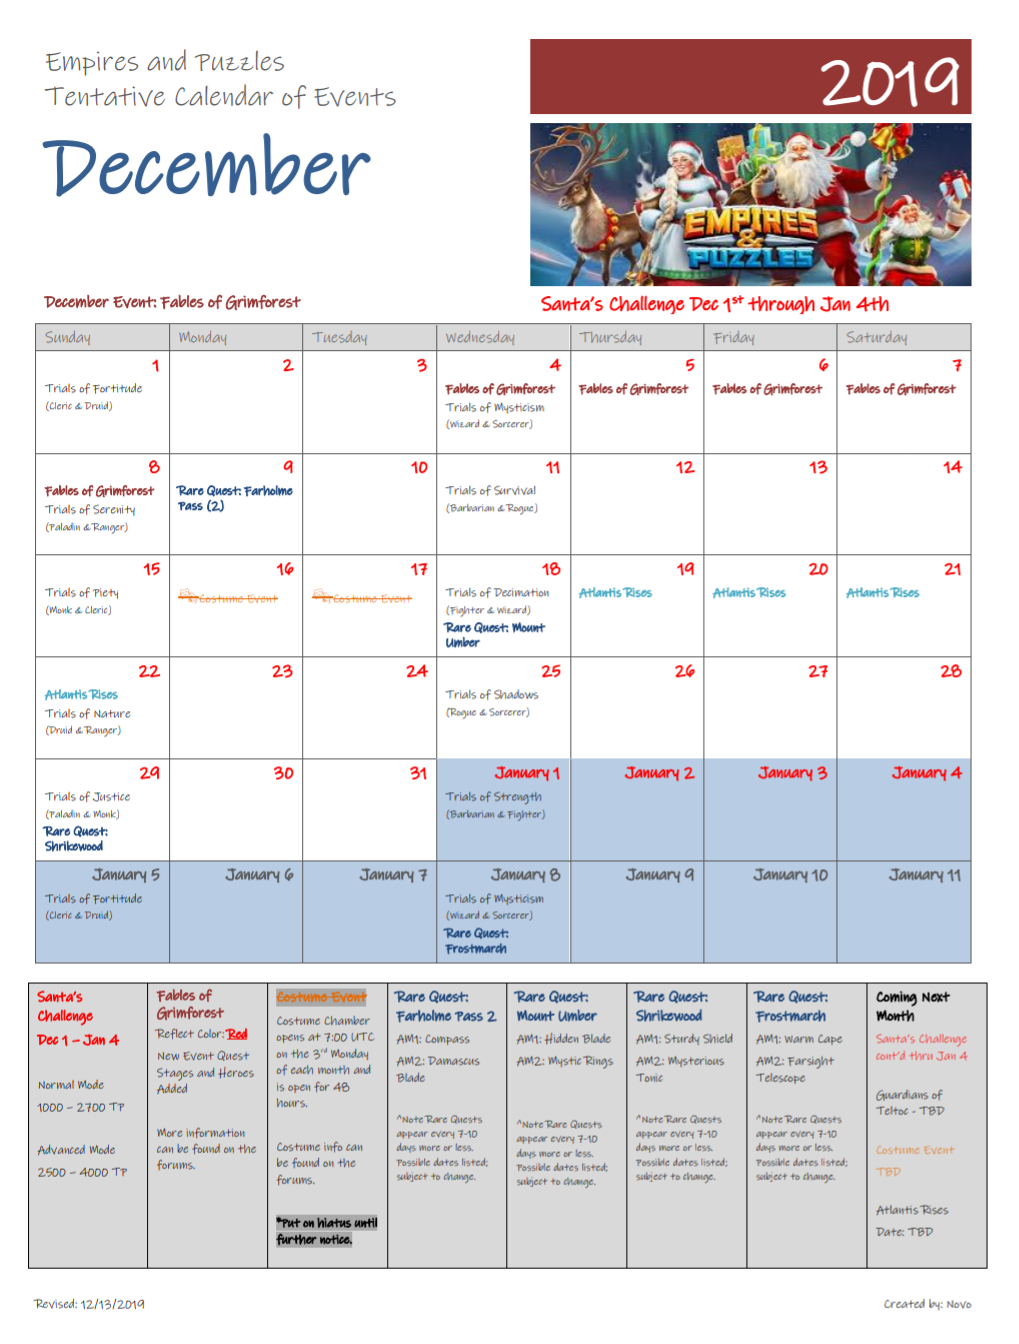 12132019 Revised Calendar In Lieu Of Recent Announcements within Empire And Puzzles Calendar